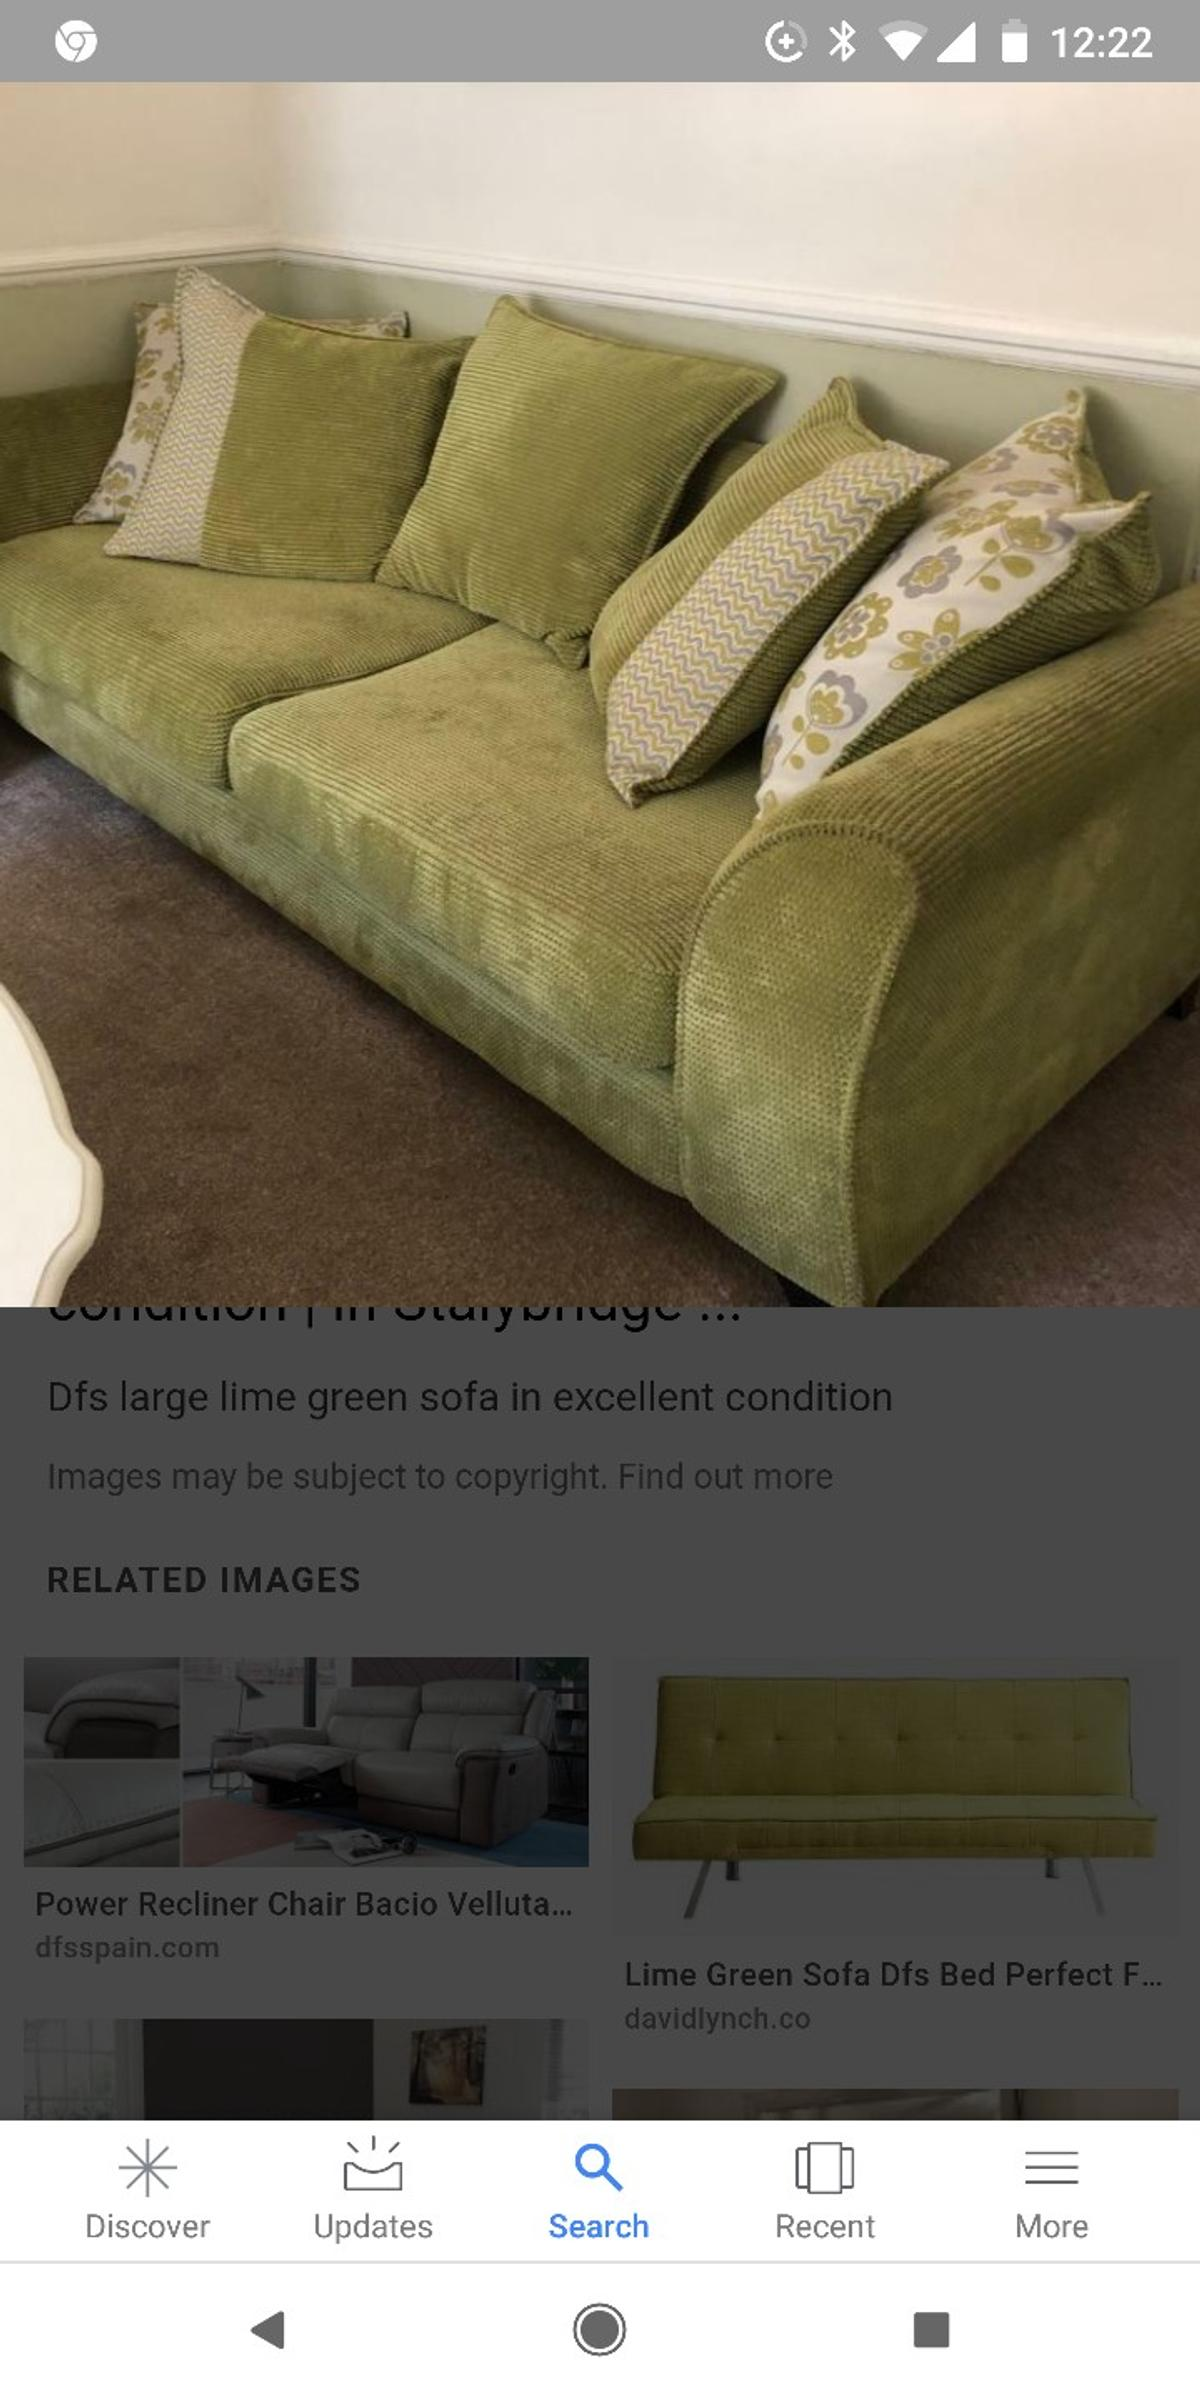 Pleasant Dfs Lime Green Sofa Caraccident5 Cool Chair Designs And Ideas Caraccident5Info